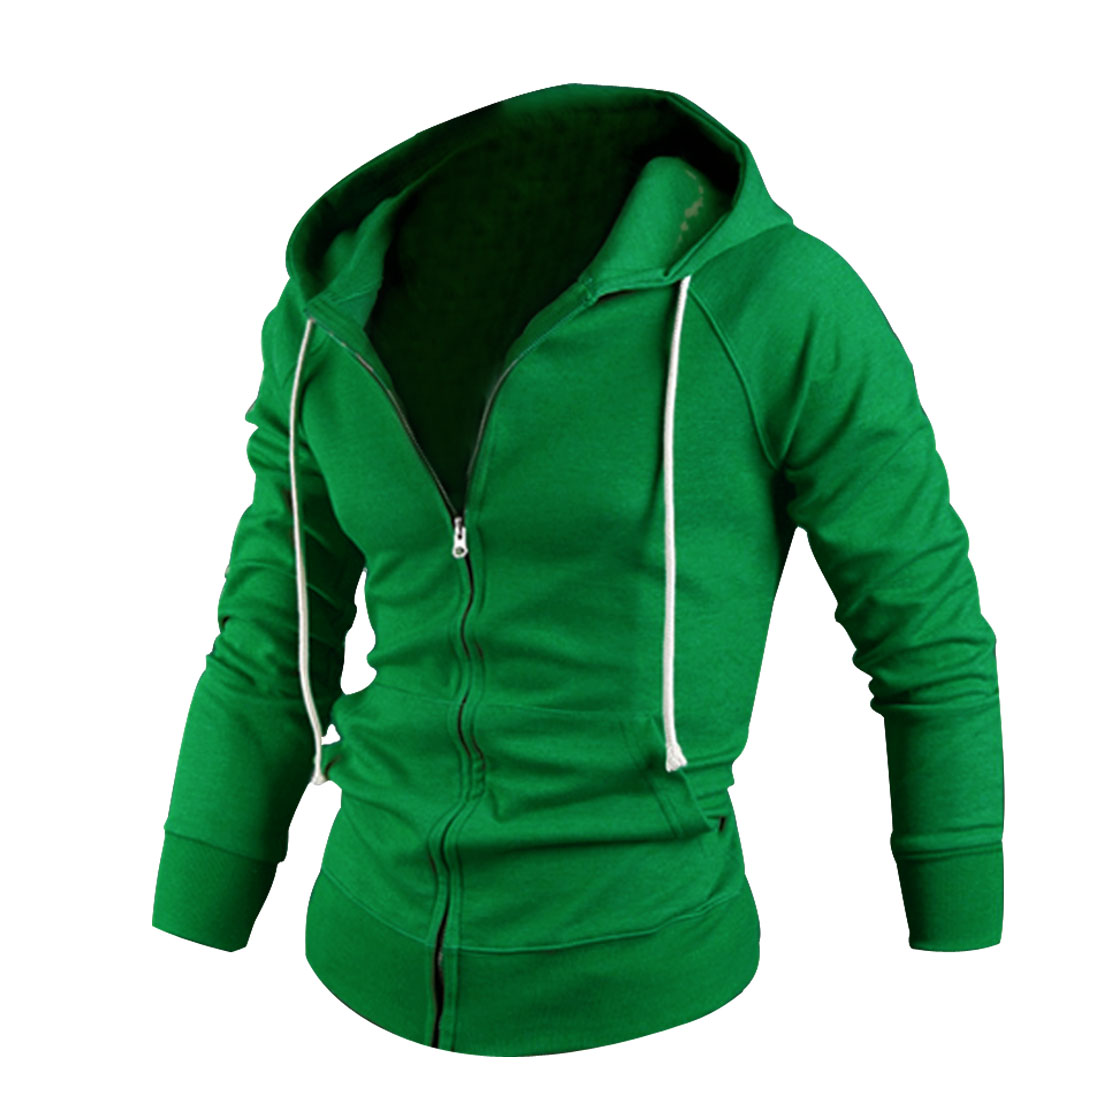 Men Zipper Front Pockets Stylish Thick Hooded Jacket Green M